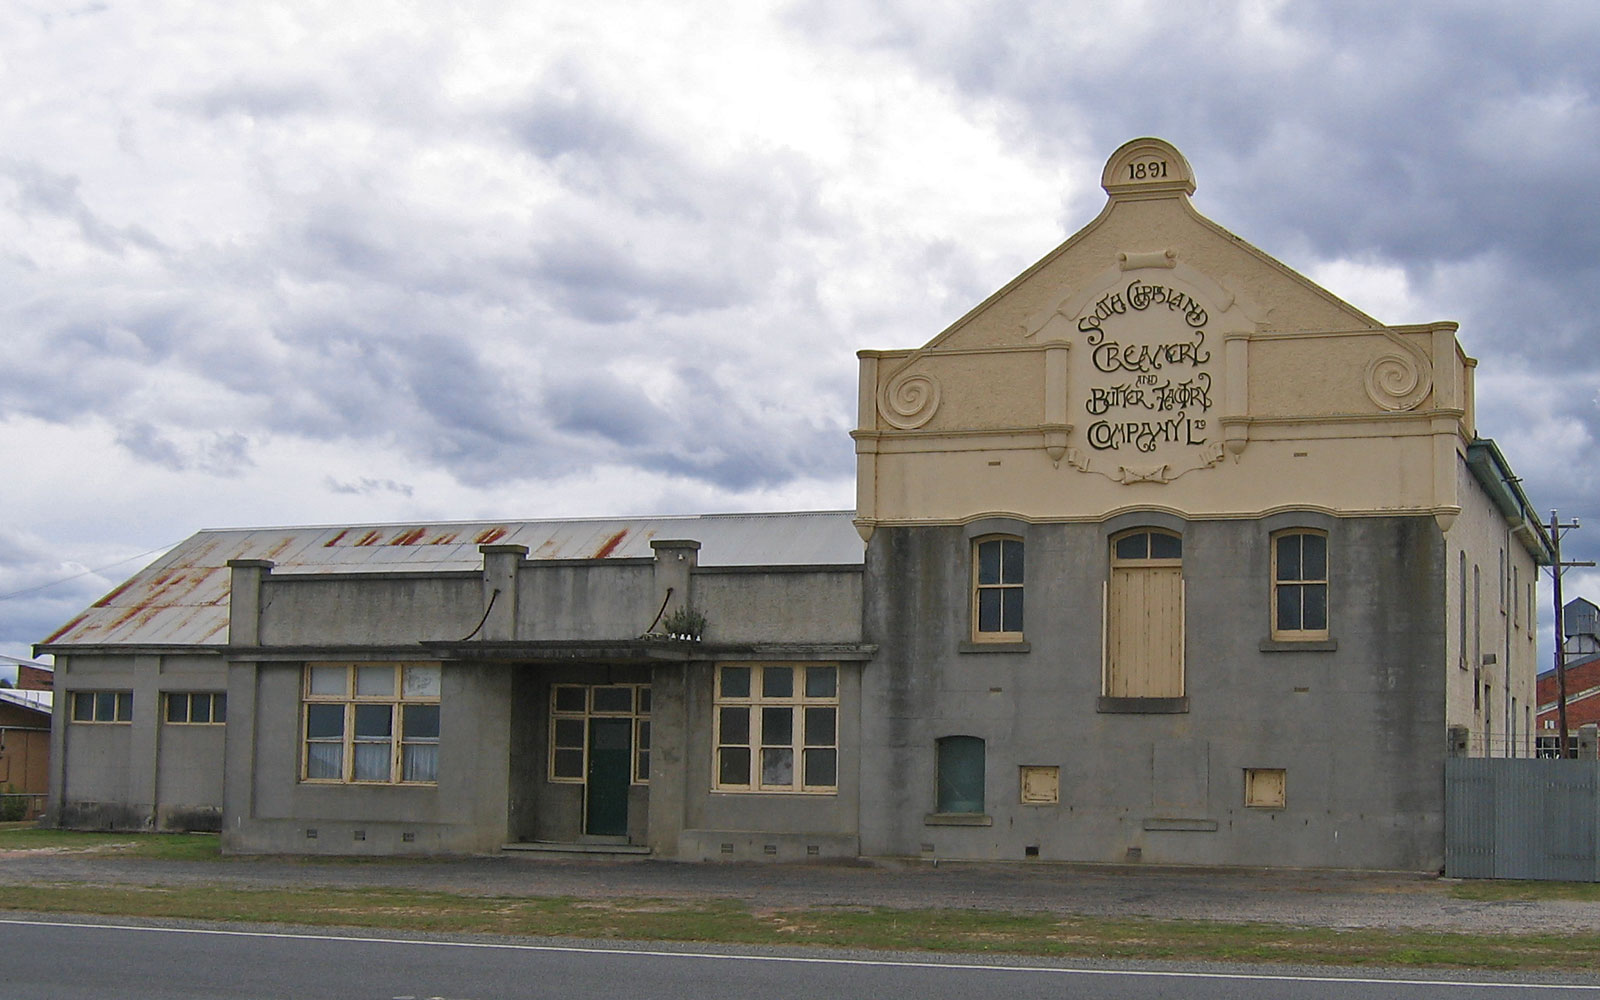 South Gippsland Creamery and Butter Factory